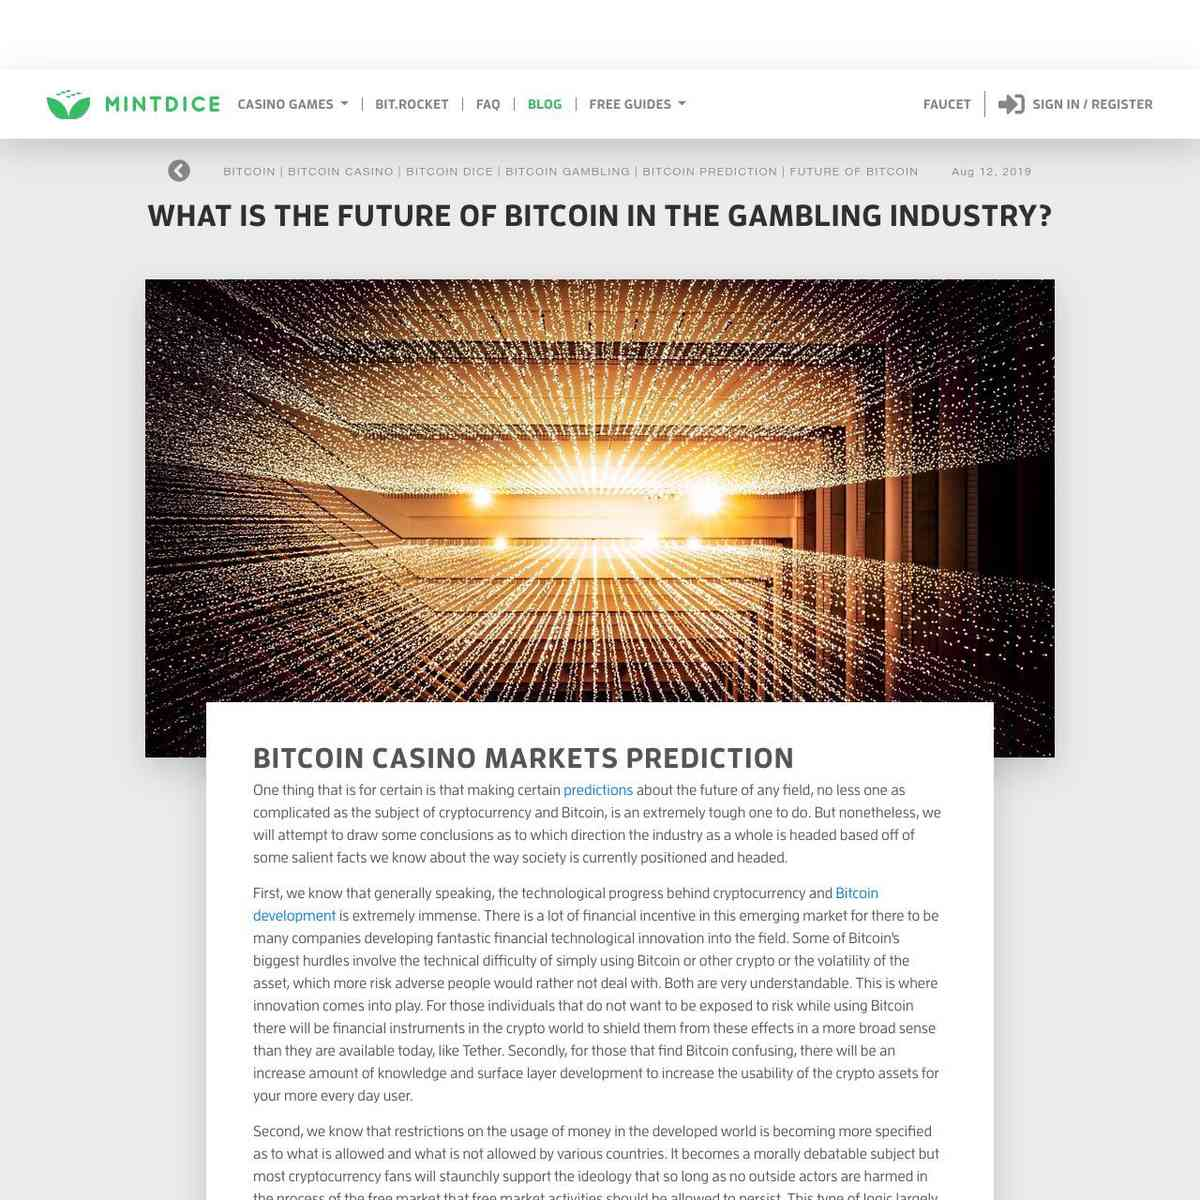 What Is The Future of Bitcoin In The Gambling Industry?